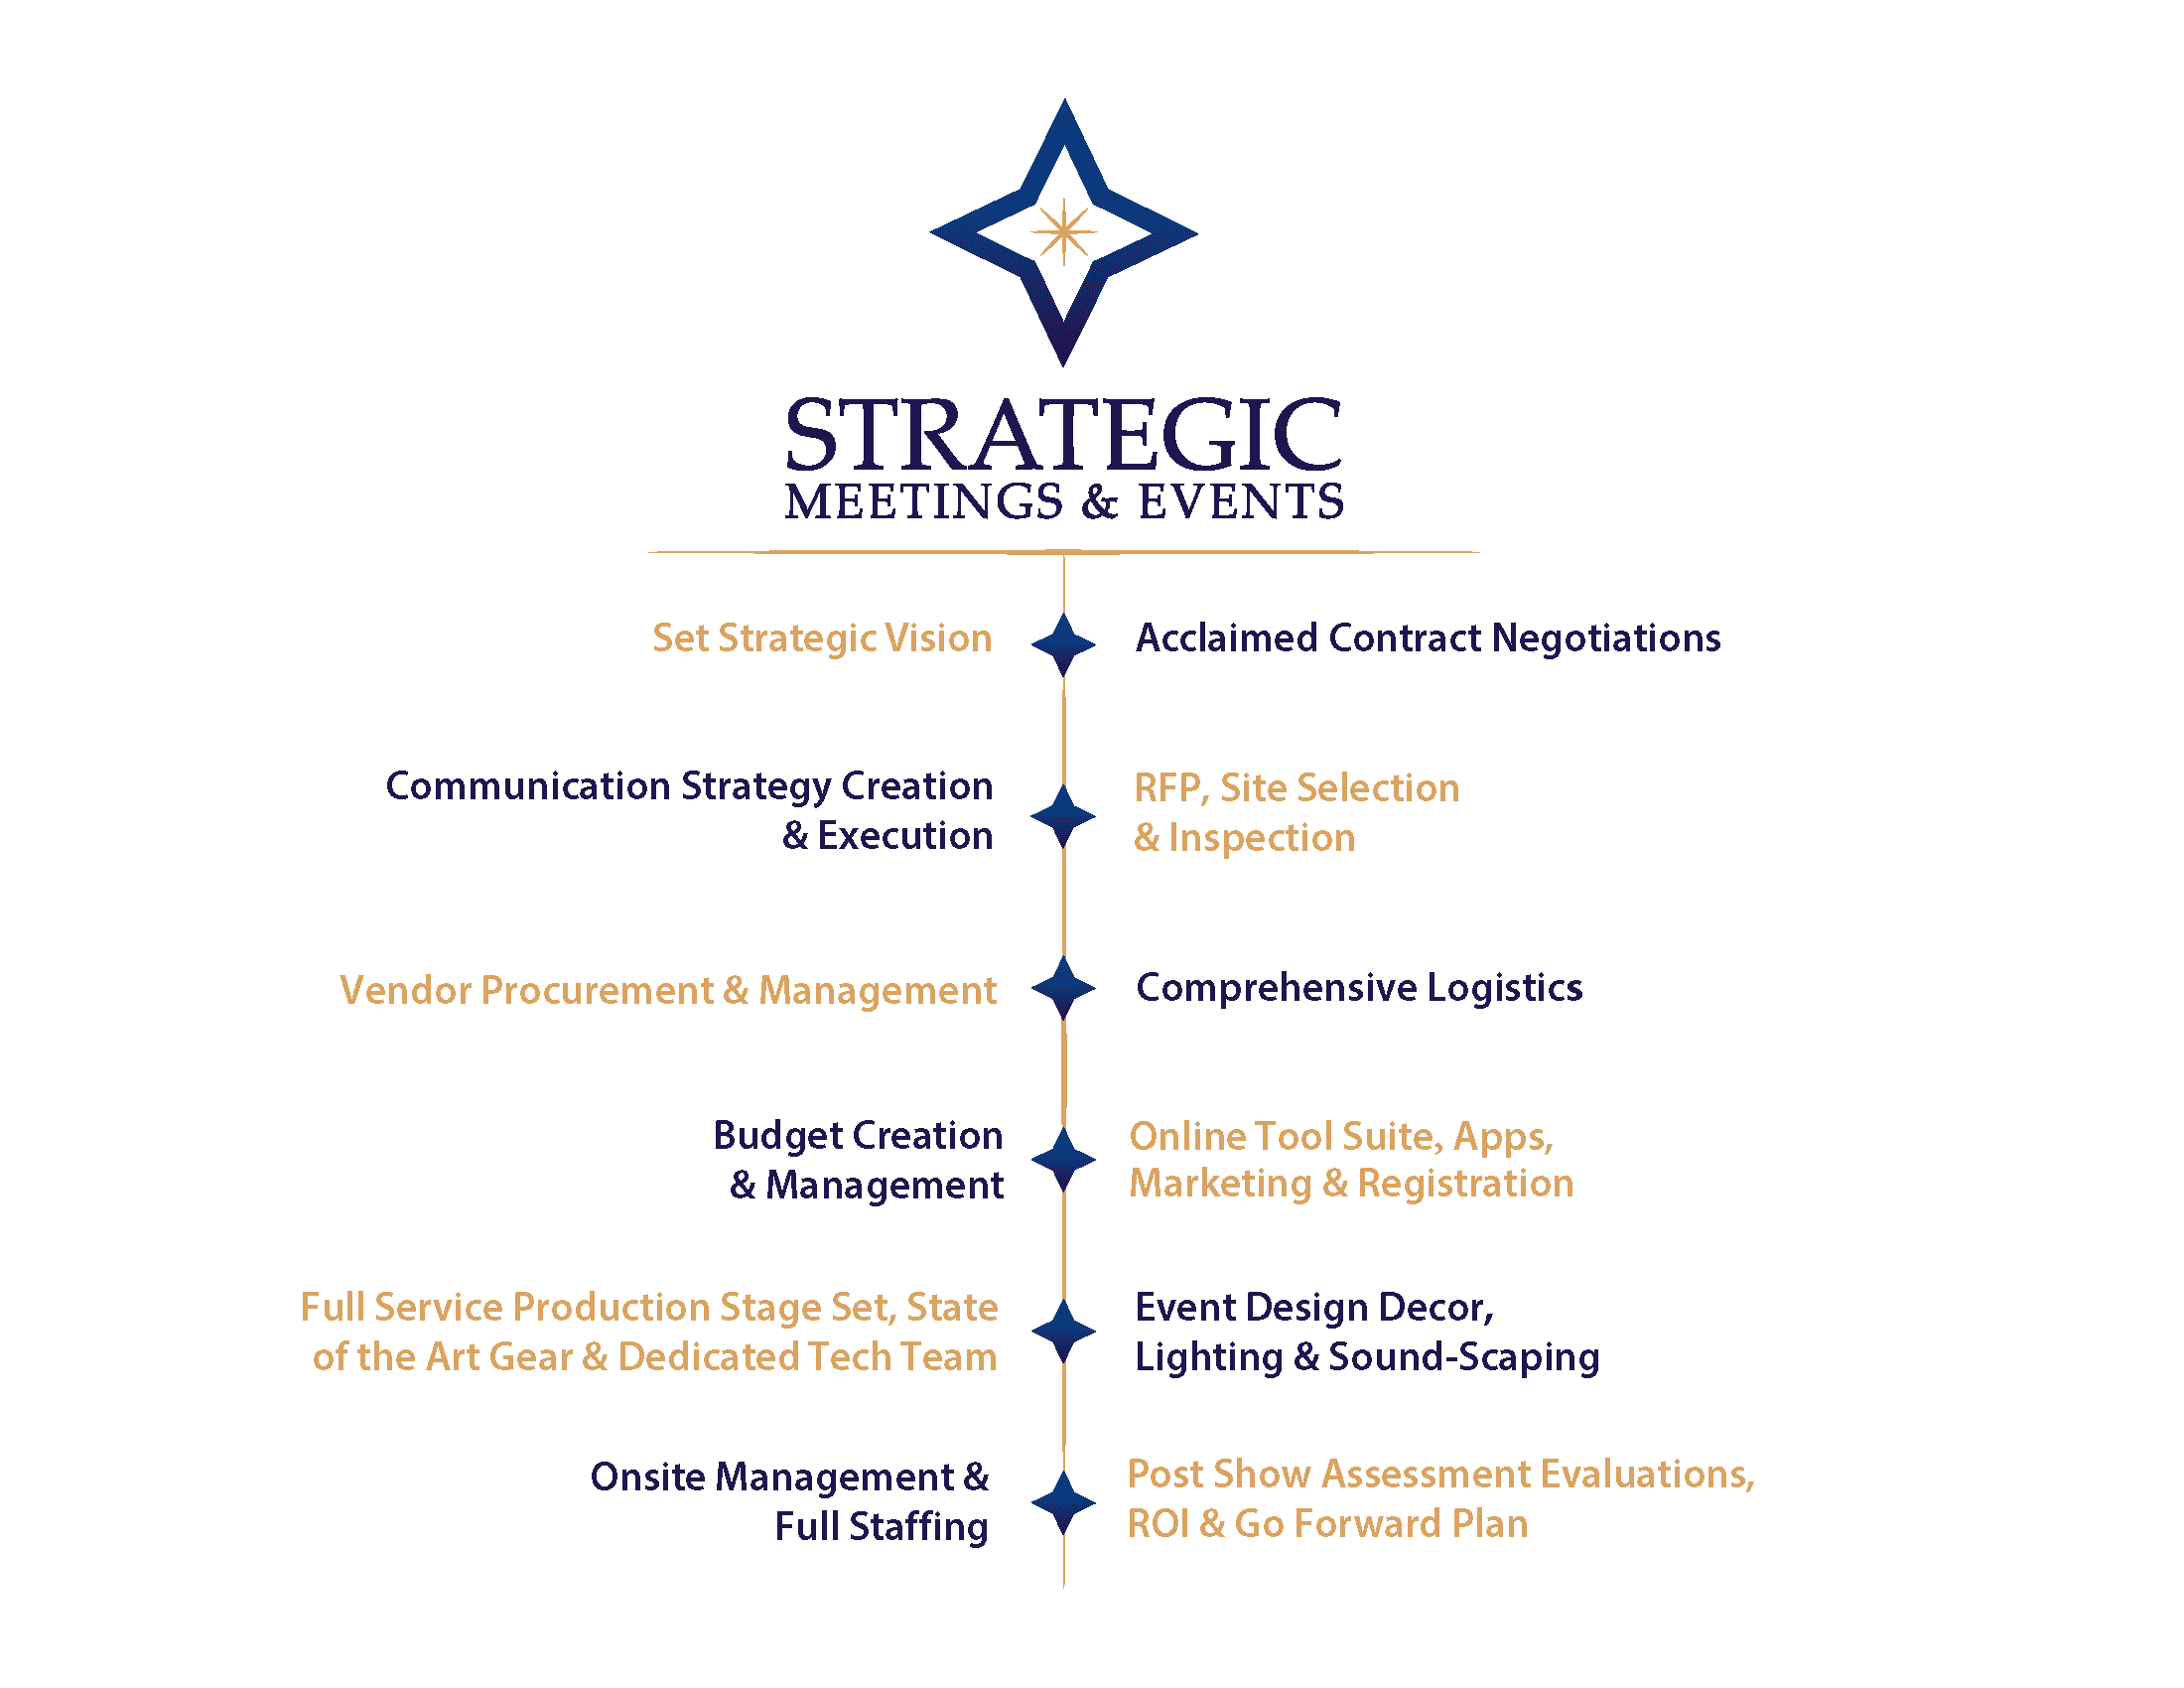 SME's master strategists unite your business strategy with our event vision and precise execution. We bring quantifiable returns to your corporate meetings management program. Trust our event planning strategists to engage your target audience. Bring value to and mastermind your corporate meetings and global events.